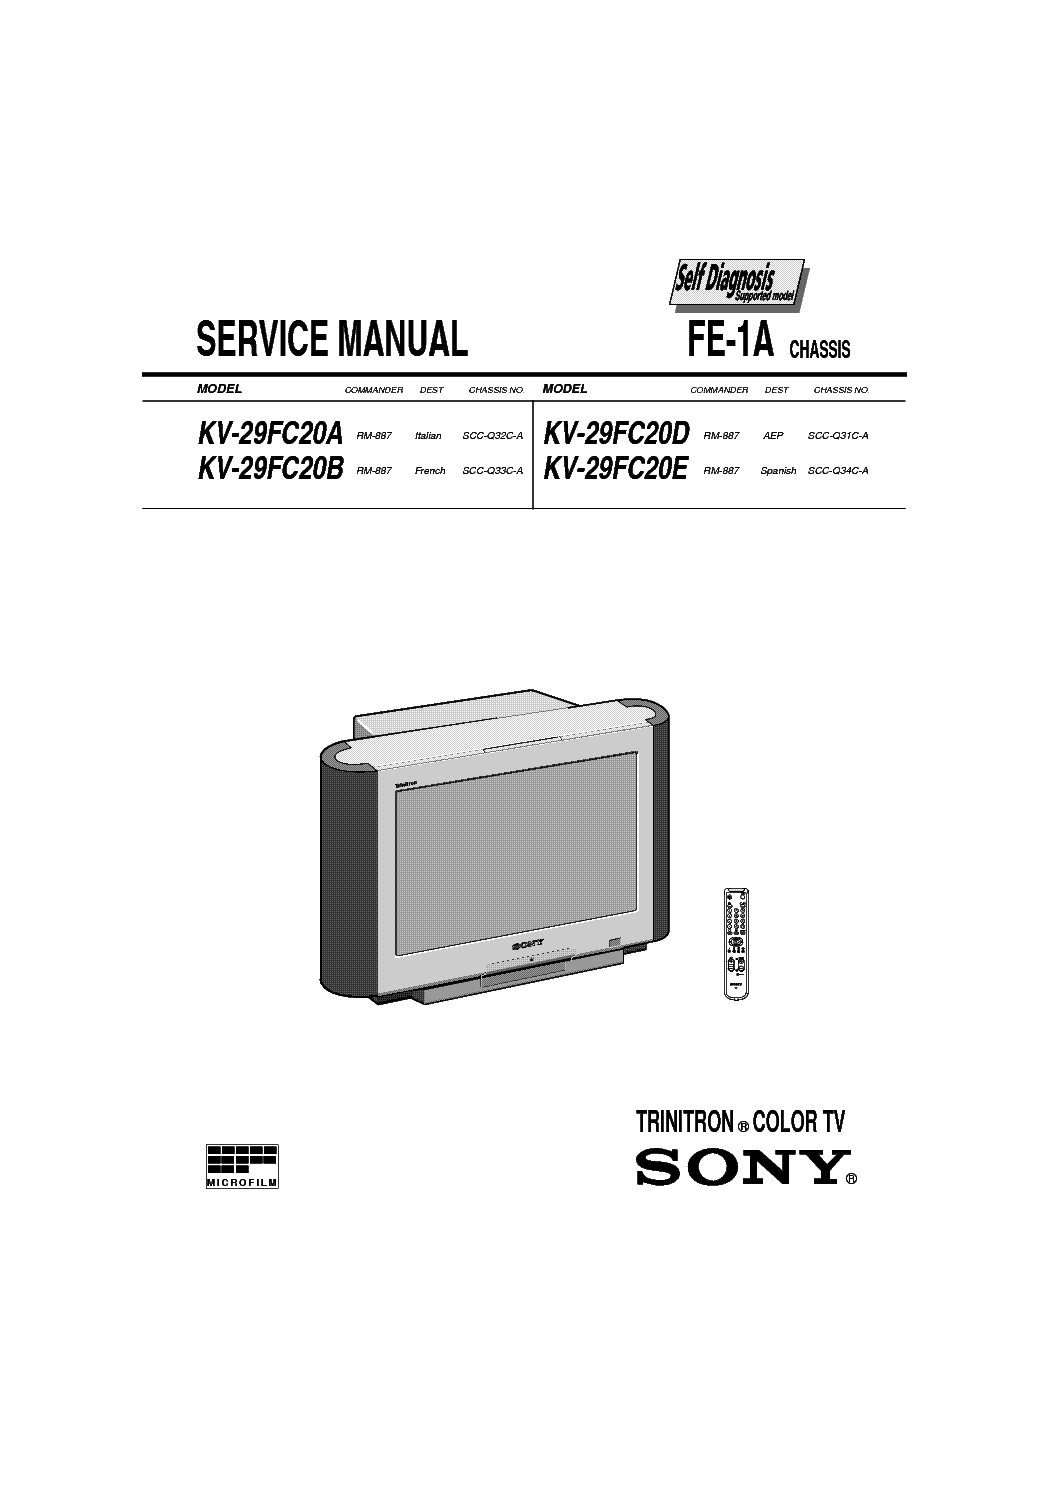 SONY KV-20FS12 CHASSIS BA-5 TRAINING-MANUAL Service Manual